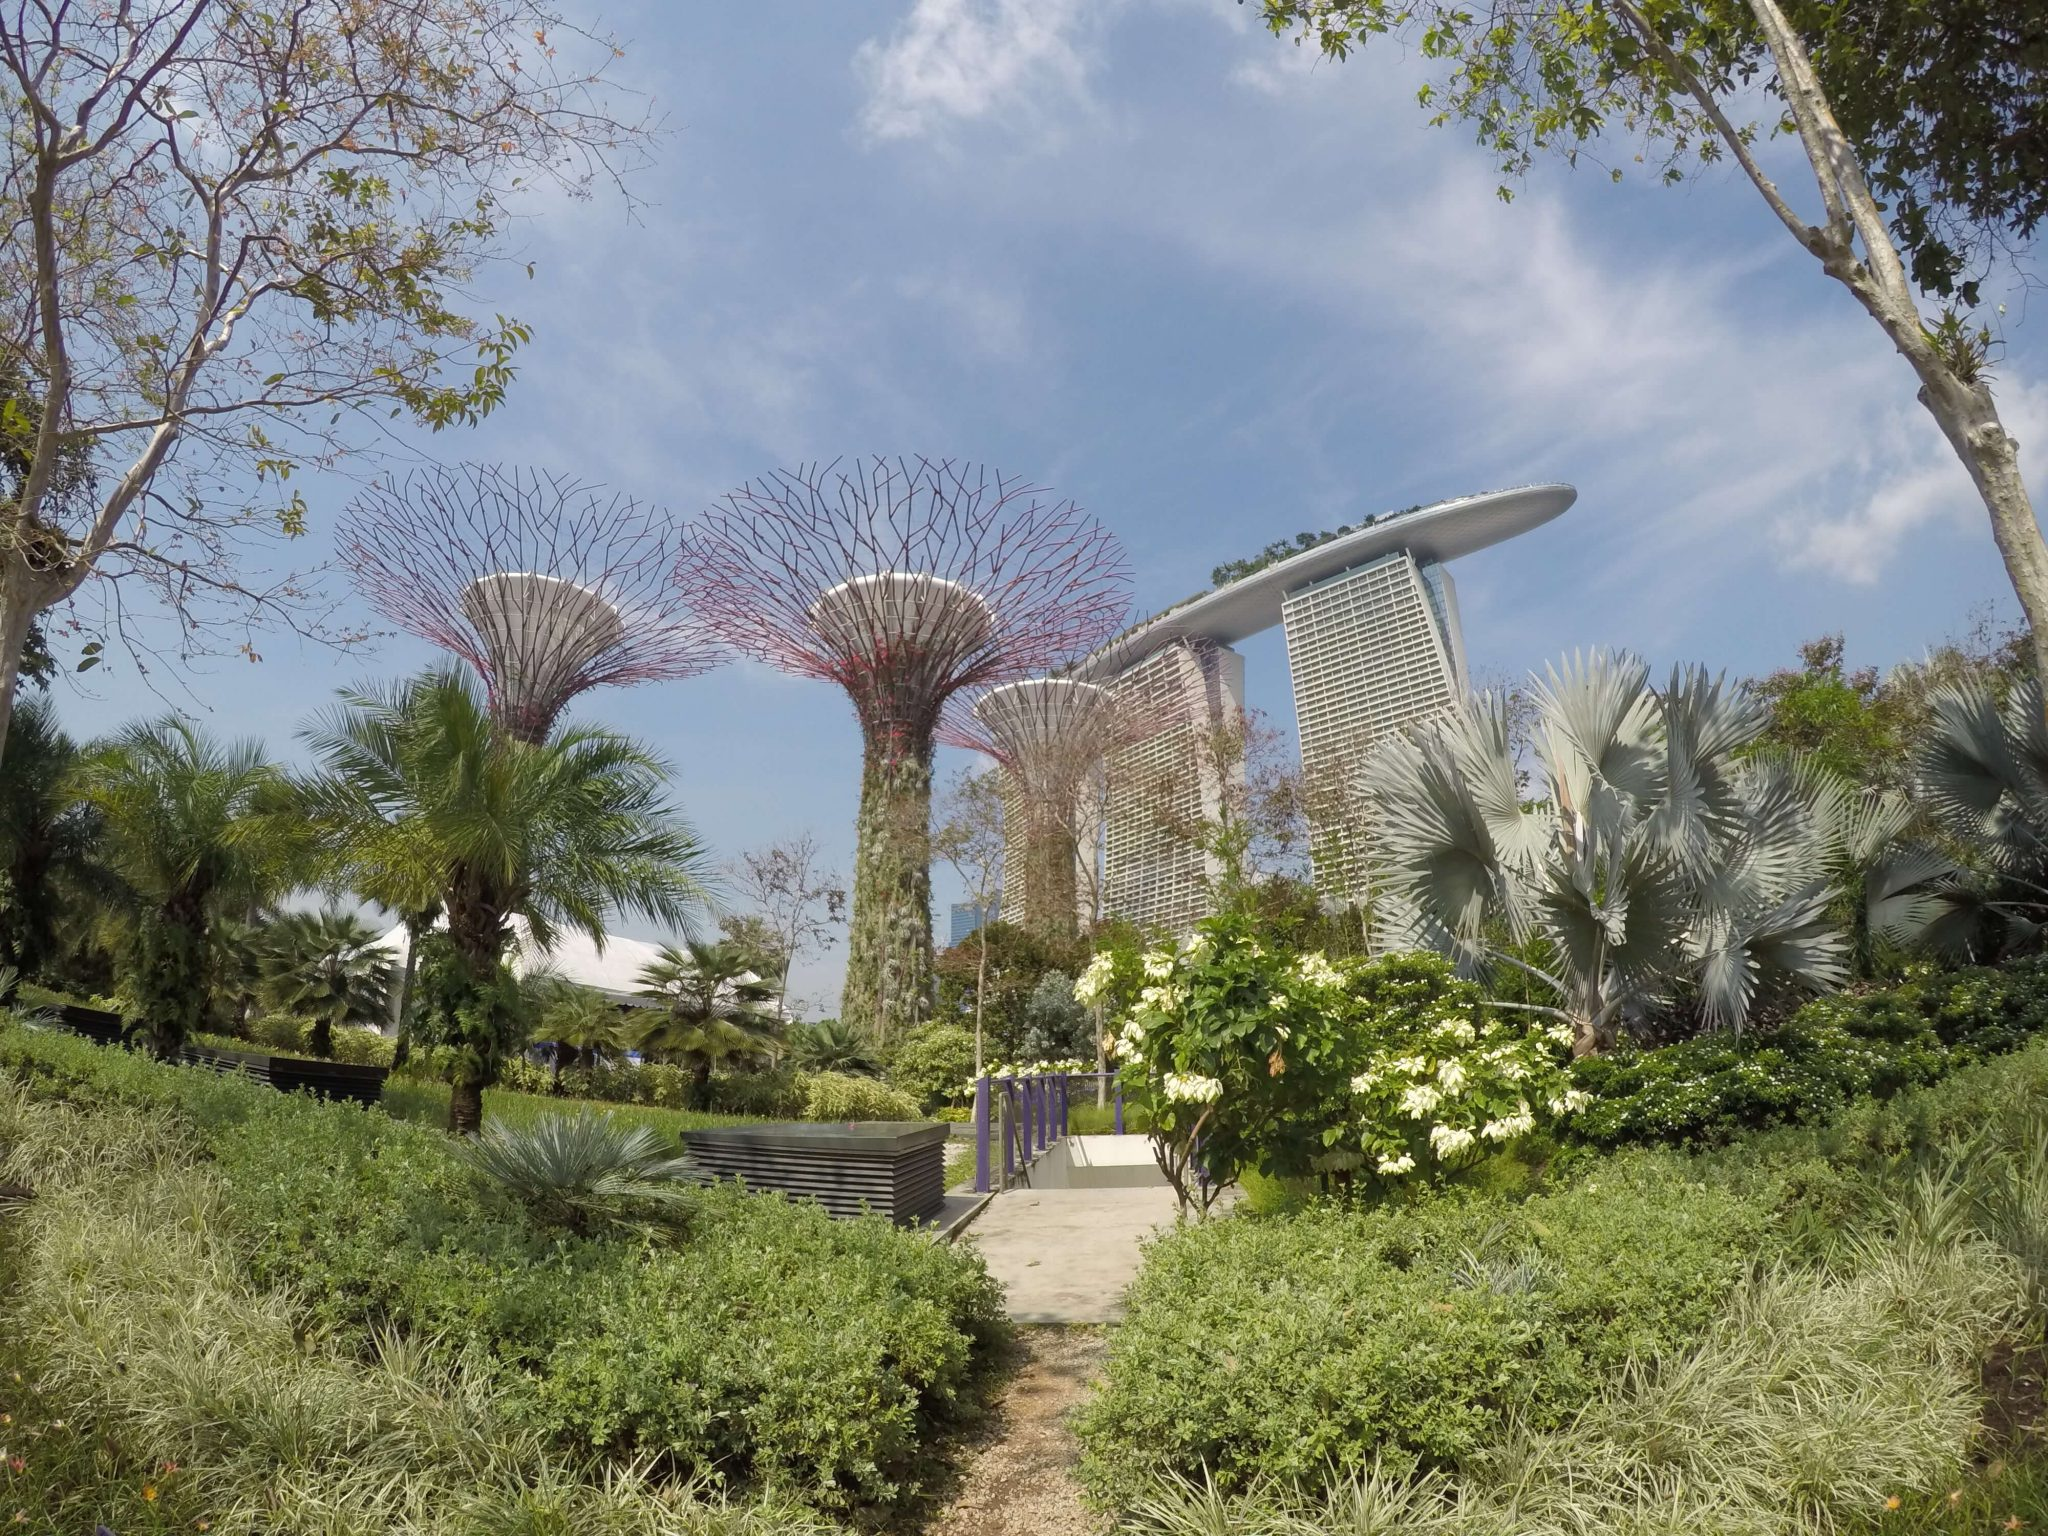 Super tree grove in Singapore.